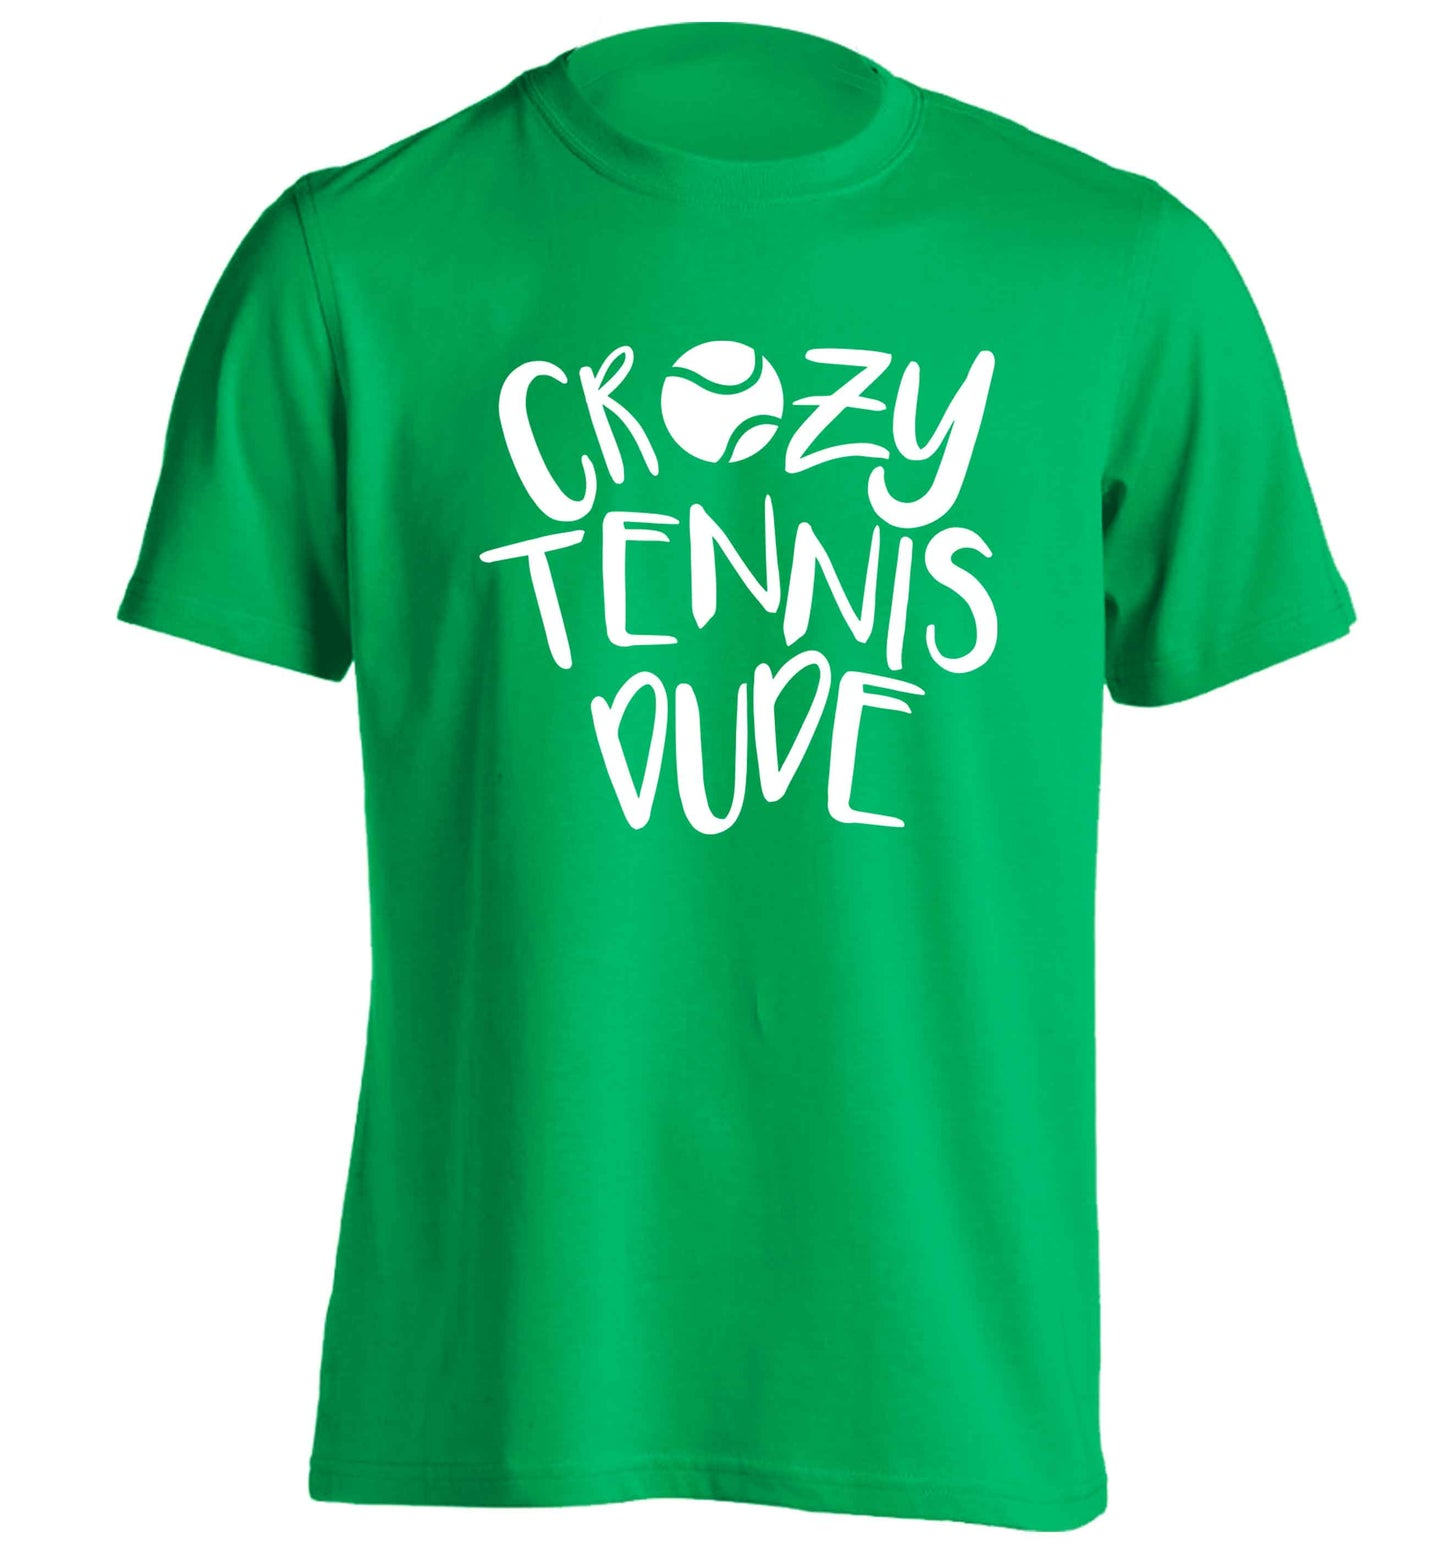 Crazy tennis dude adults unisex green Tshirt 2XL